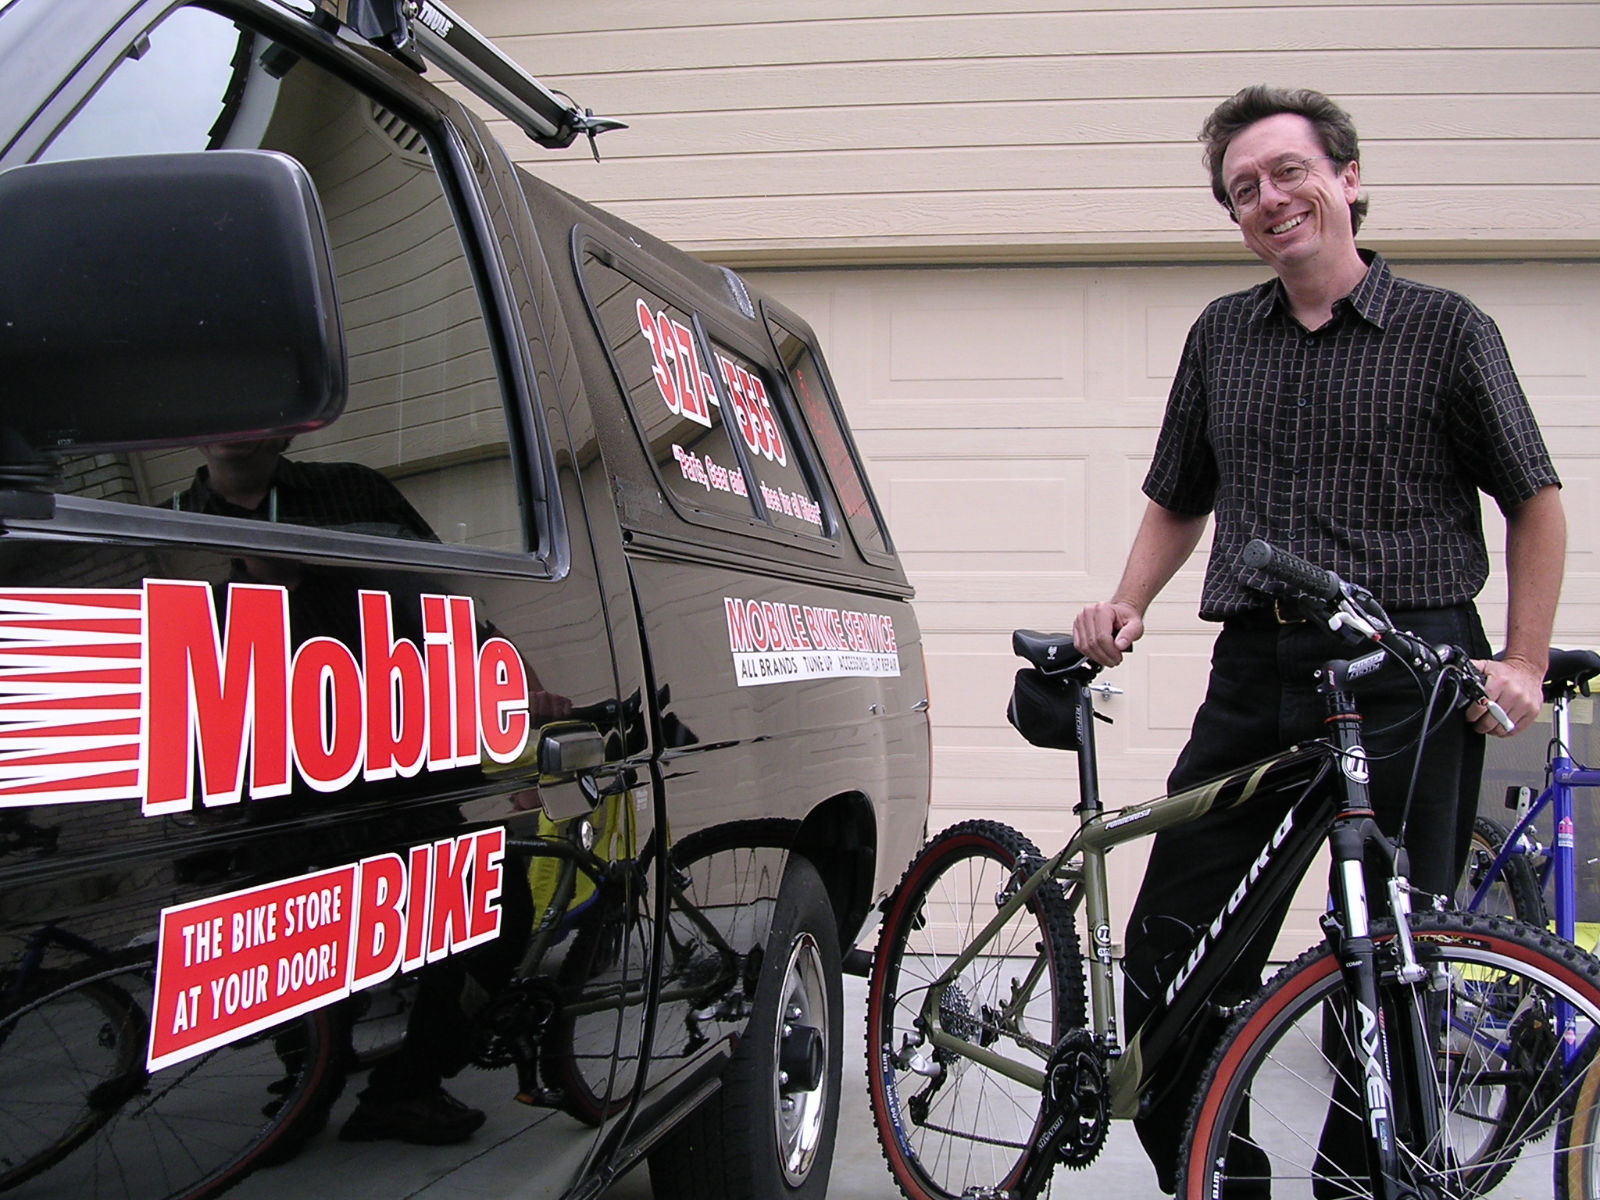 Bike Stores In Boise Idaho Mobile Bike The Bike Store at